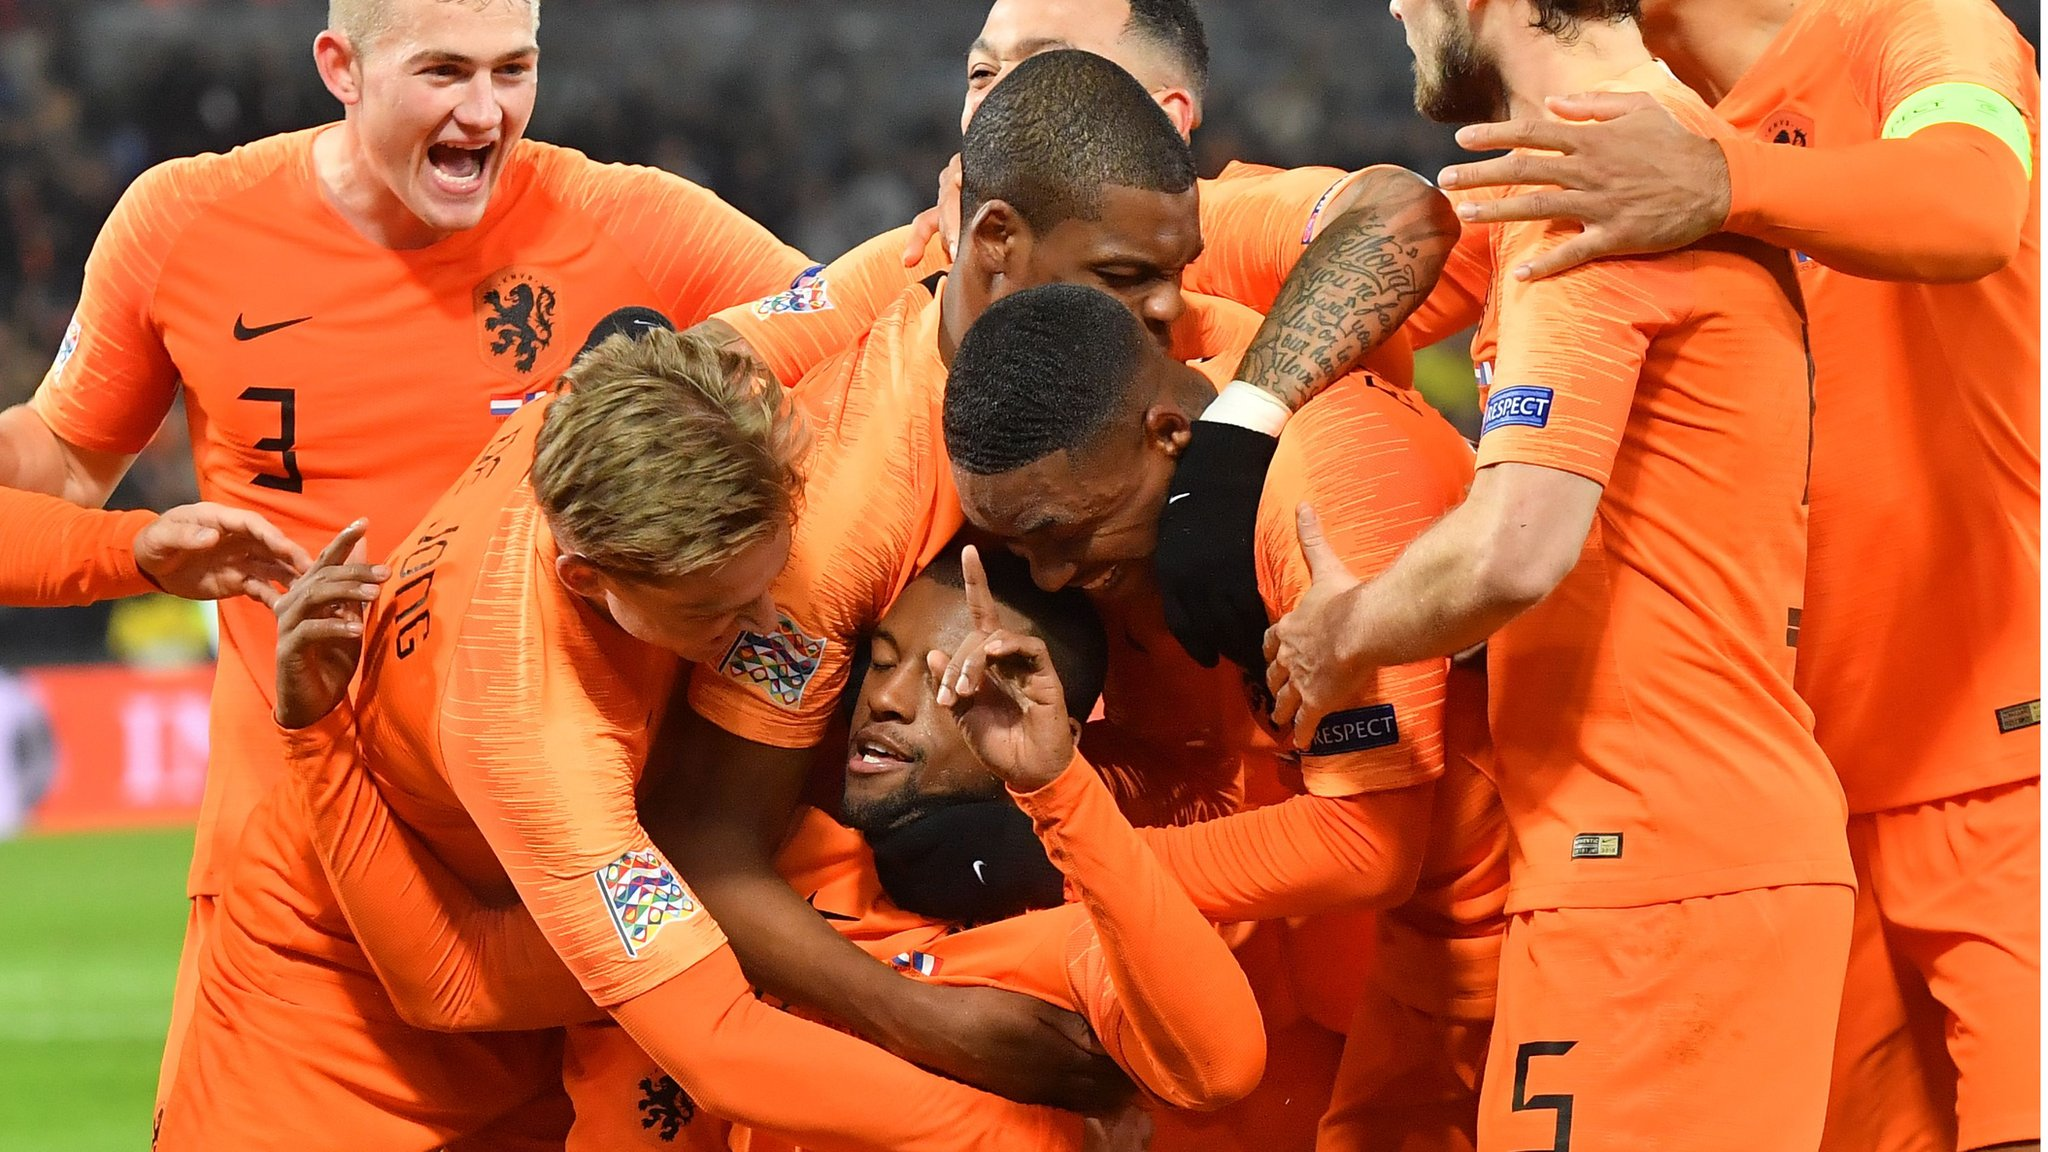 Netherlands 2-0 France: Dutch beat world champions to relegate Germany